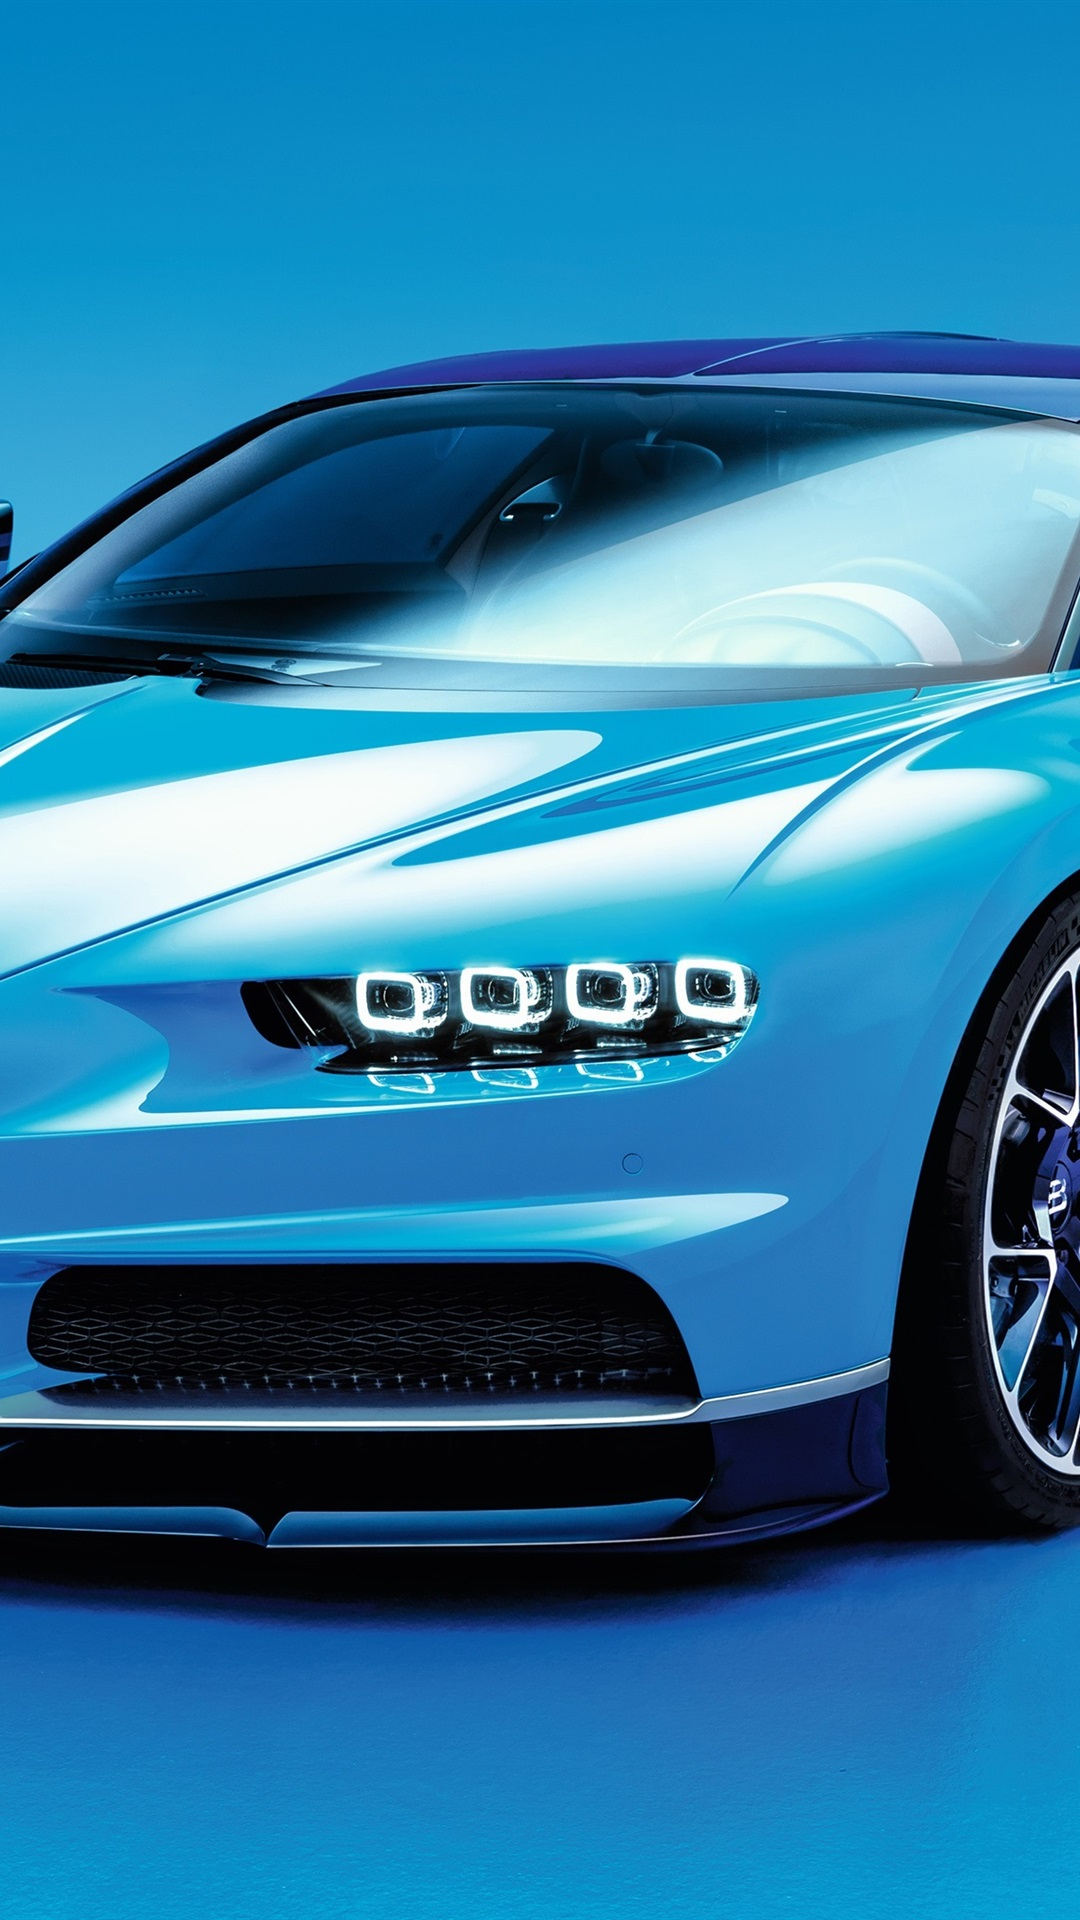 Bugatti Chiron Blue Supercar 1080x1920 Iphone 8 7 6 6s Plus Wallpaper Background Picture Image